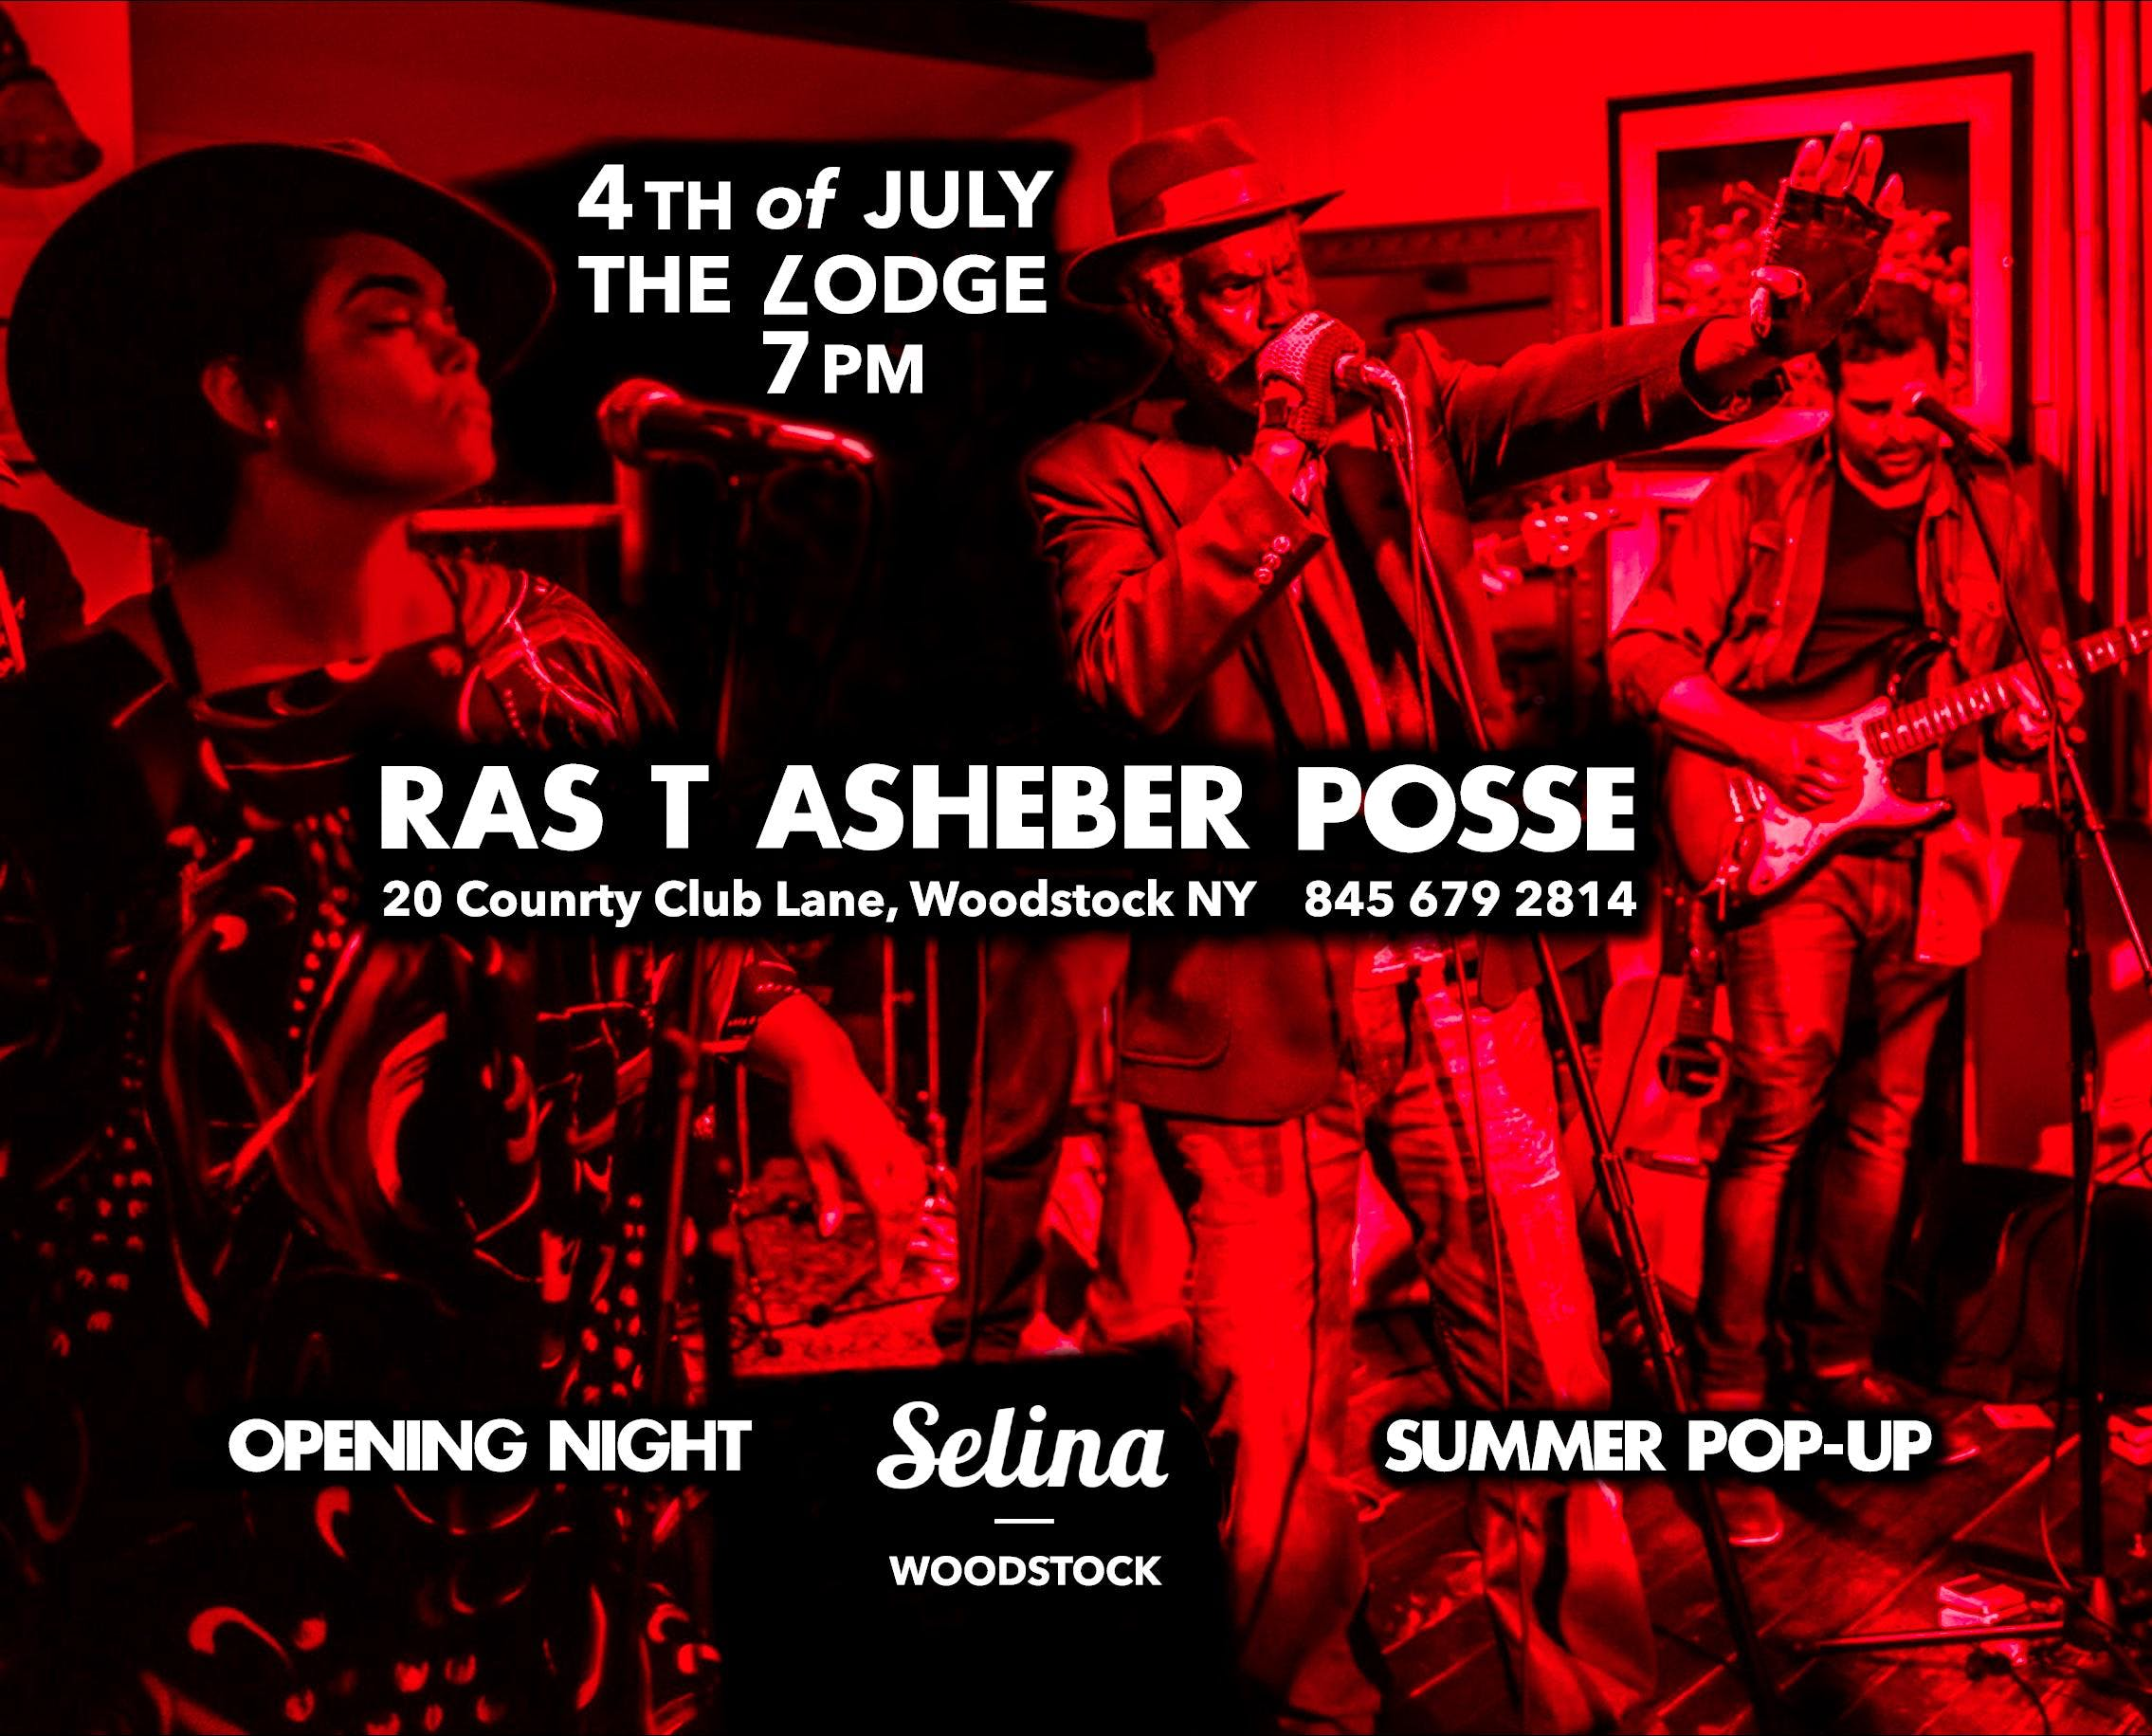 Opening Night! Selina Summer Pop-Up at The Lodge = Ras T Asheber